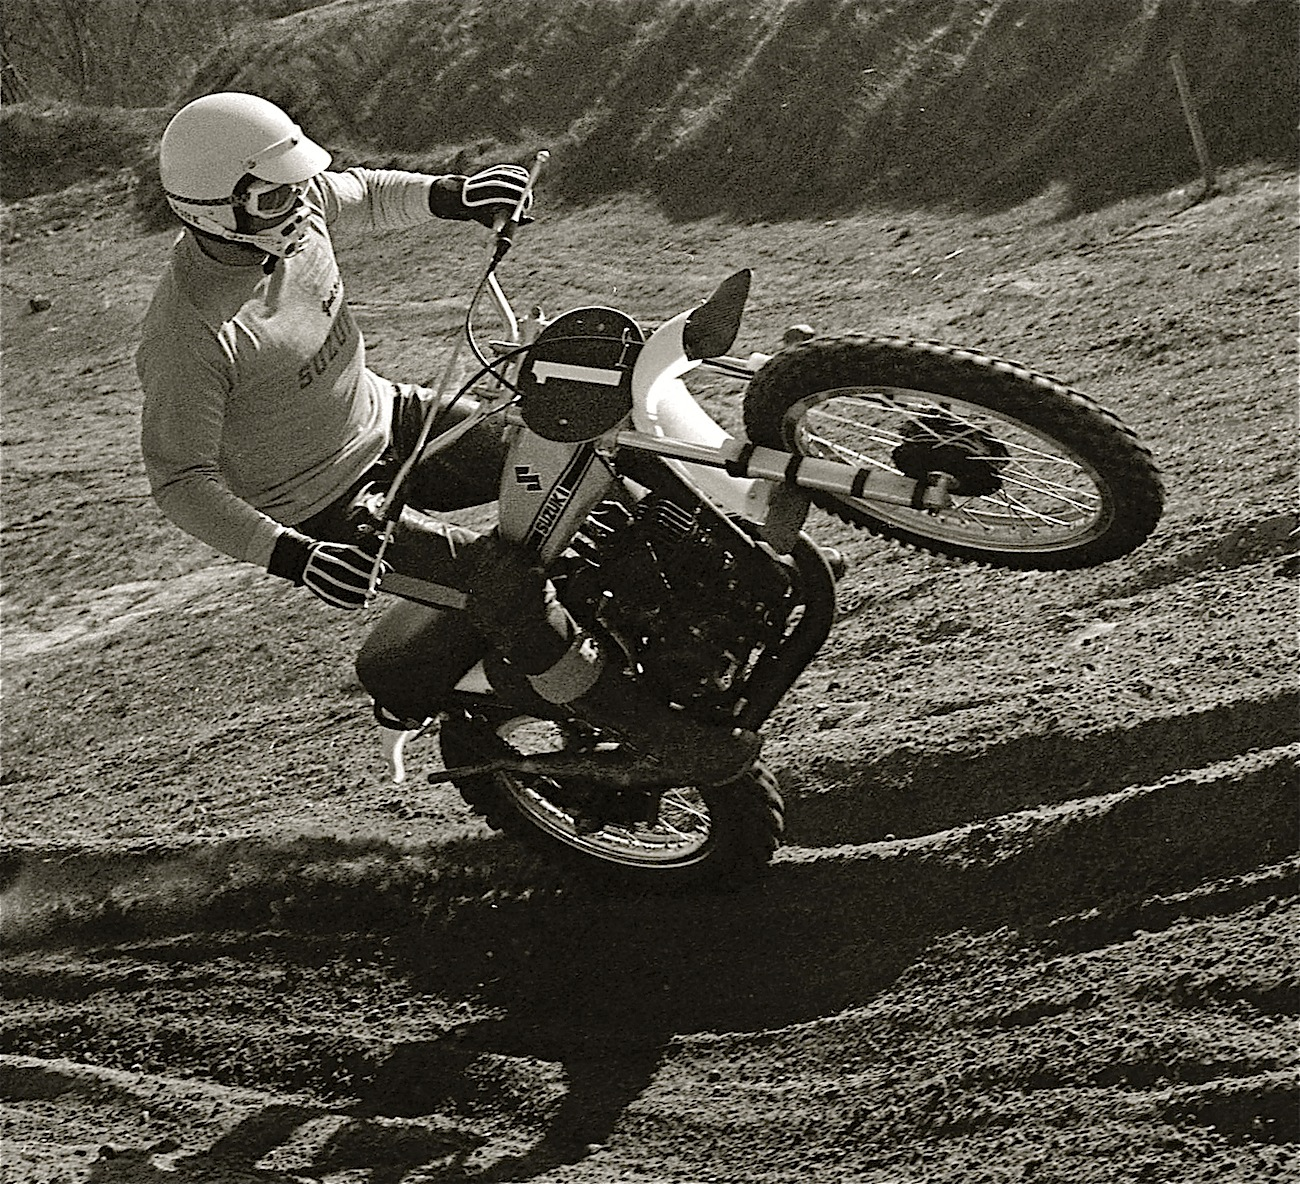 Mx Knee Braces >> CLASSIC MOTOCROSS PHOTOS: NOT EVERY WORLD CHAMP IS AN ADONIS | Motocross Action Magazine